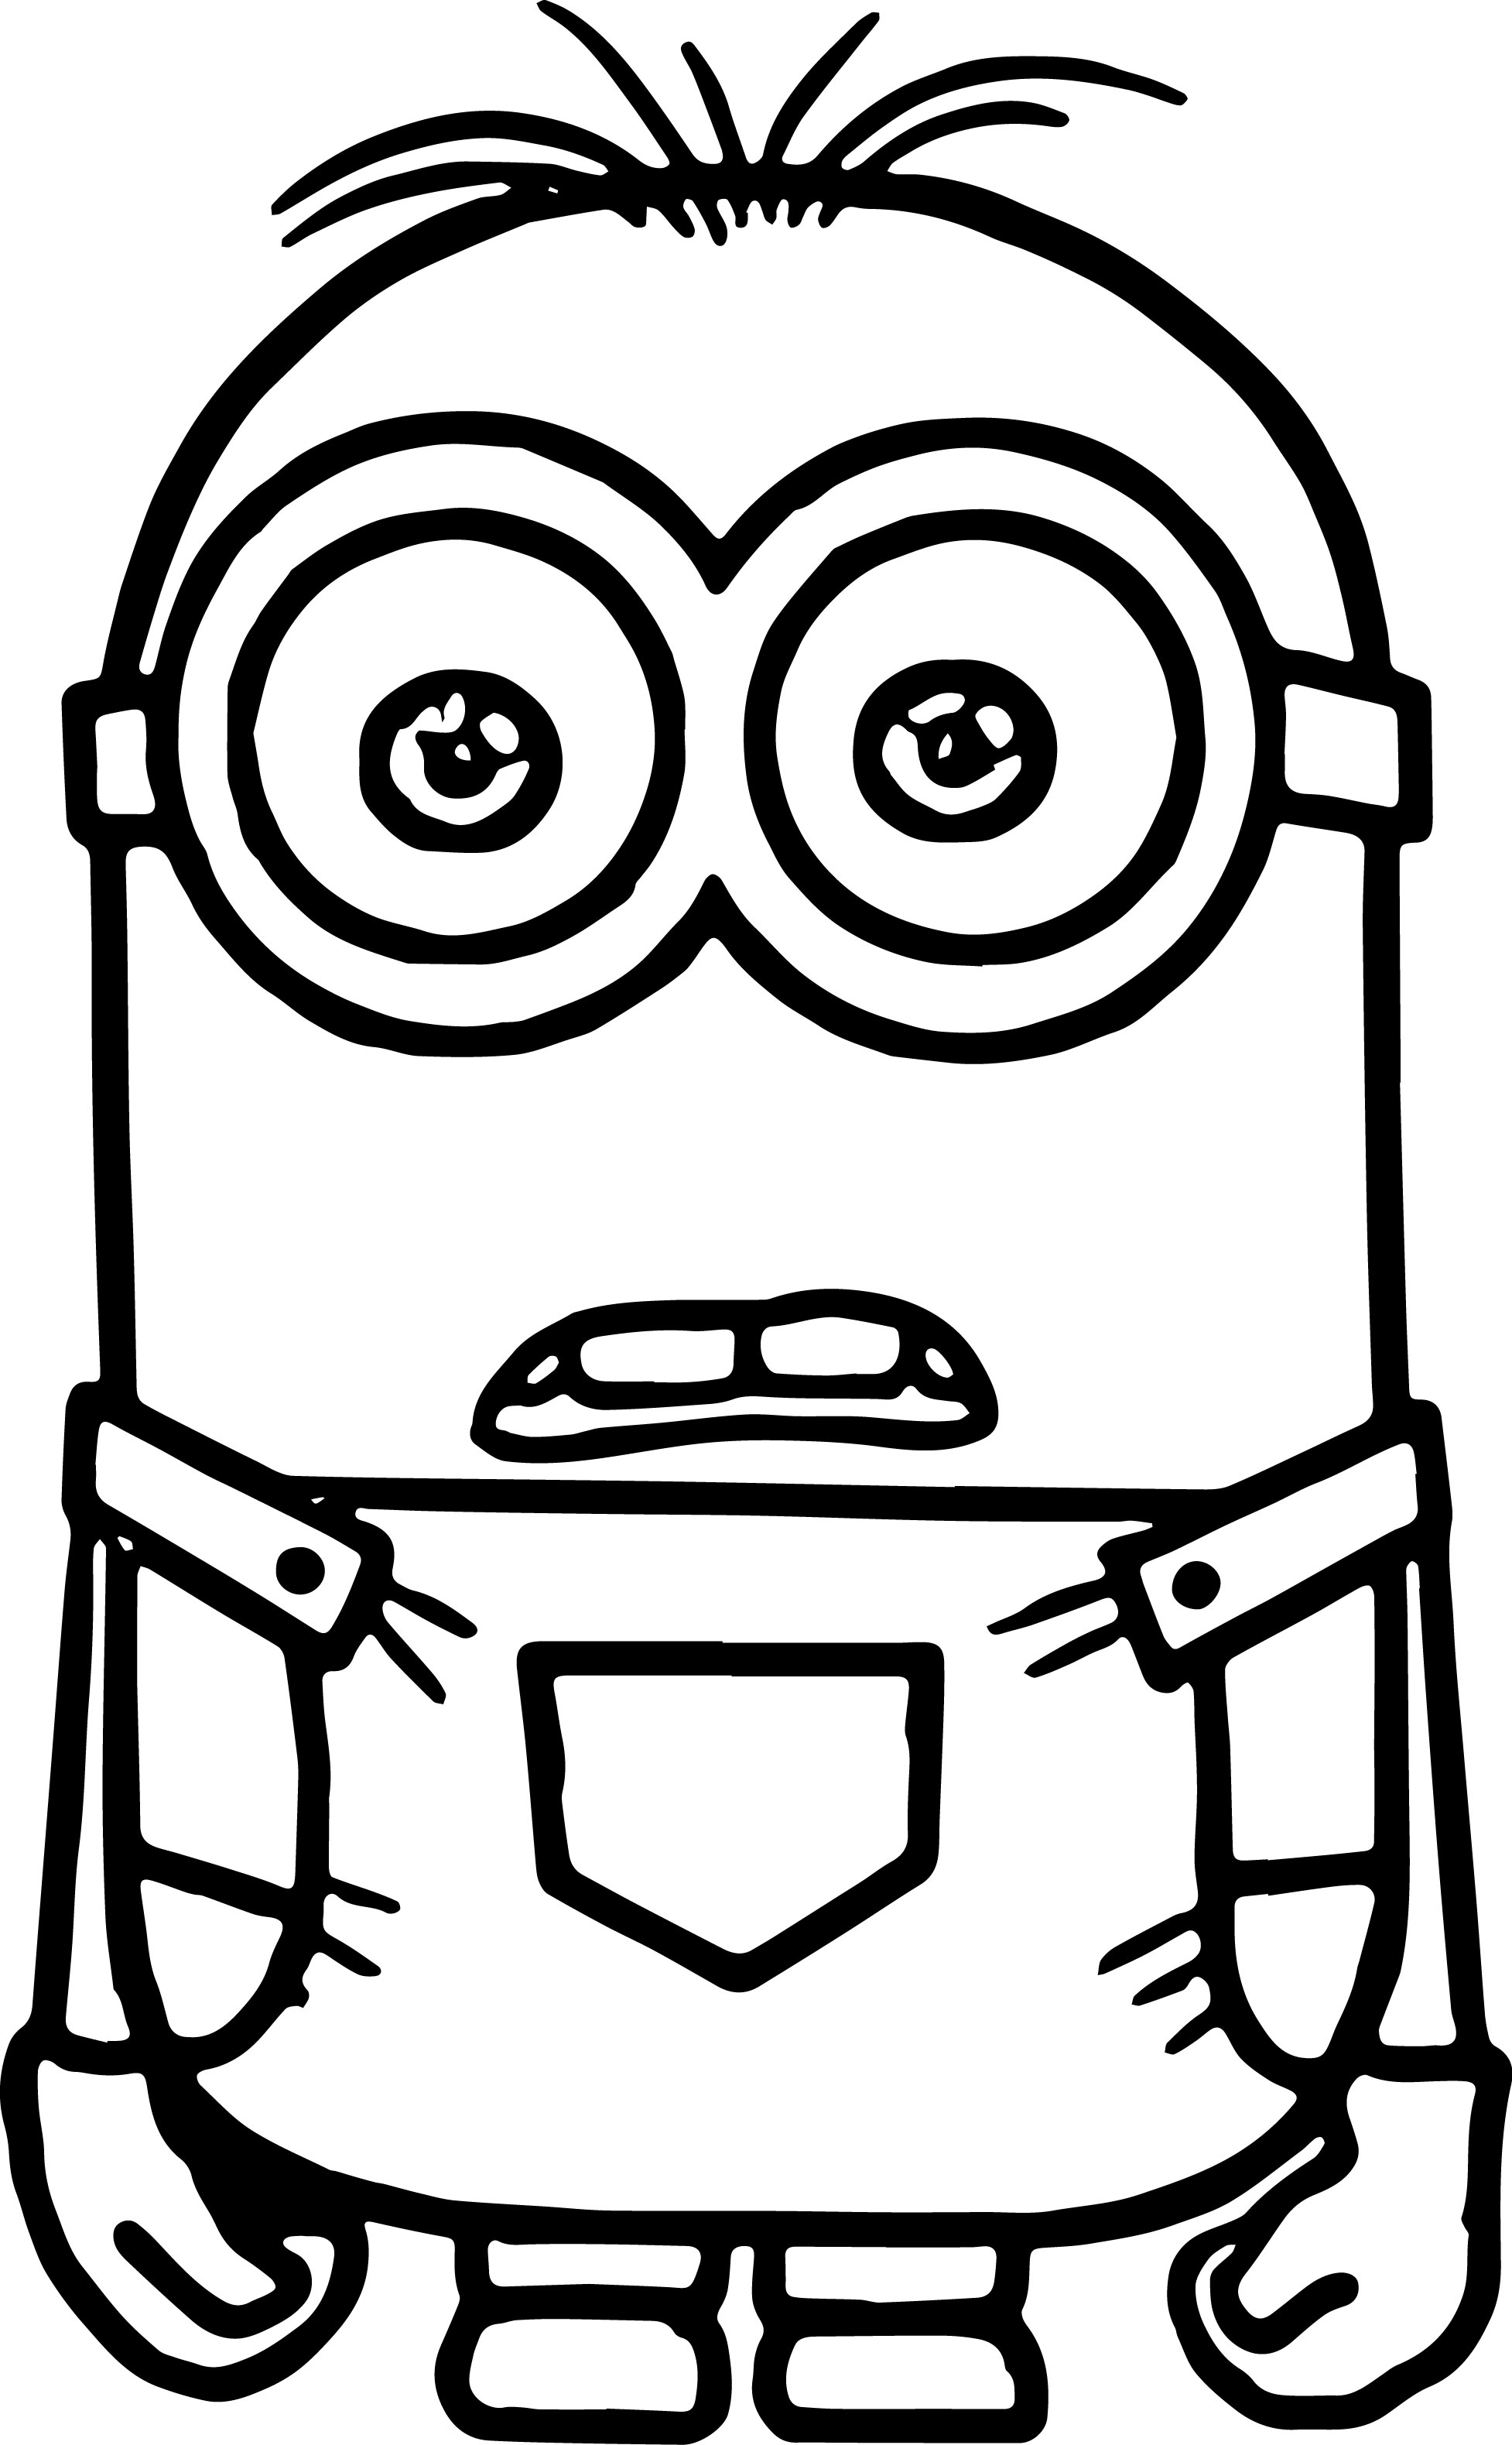 graphic about Minions Printable Coloring Pages referred to as Minion Coloring Webpages Totally free down load least complicated Minion Coloring